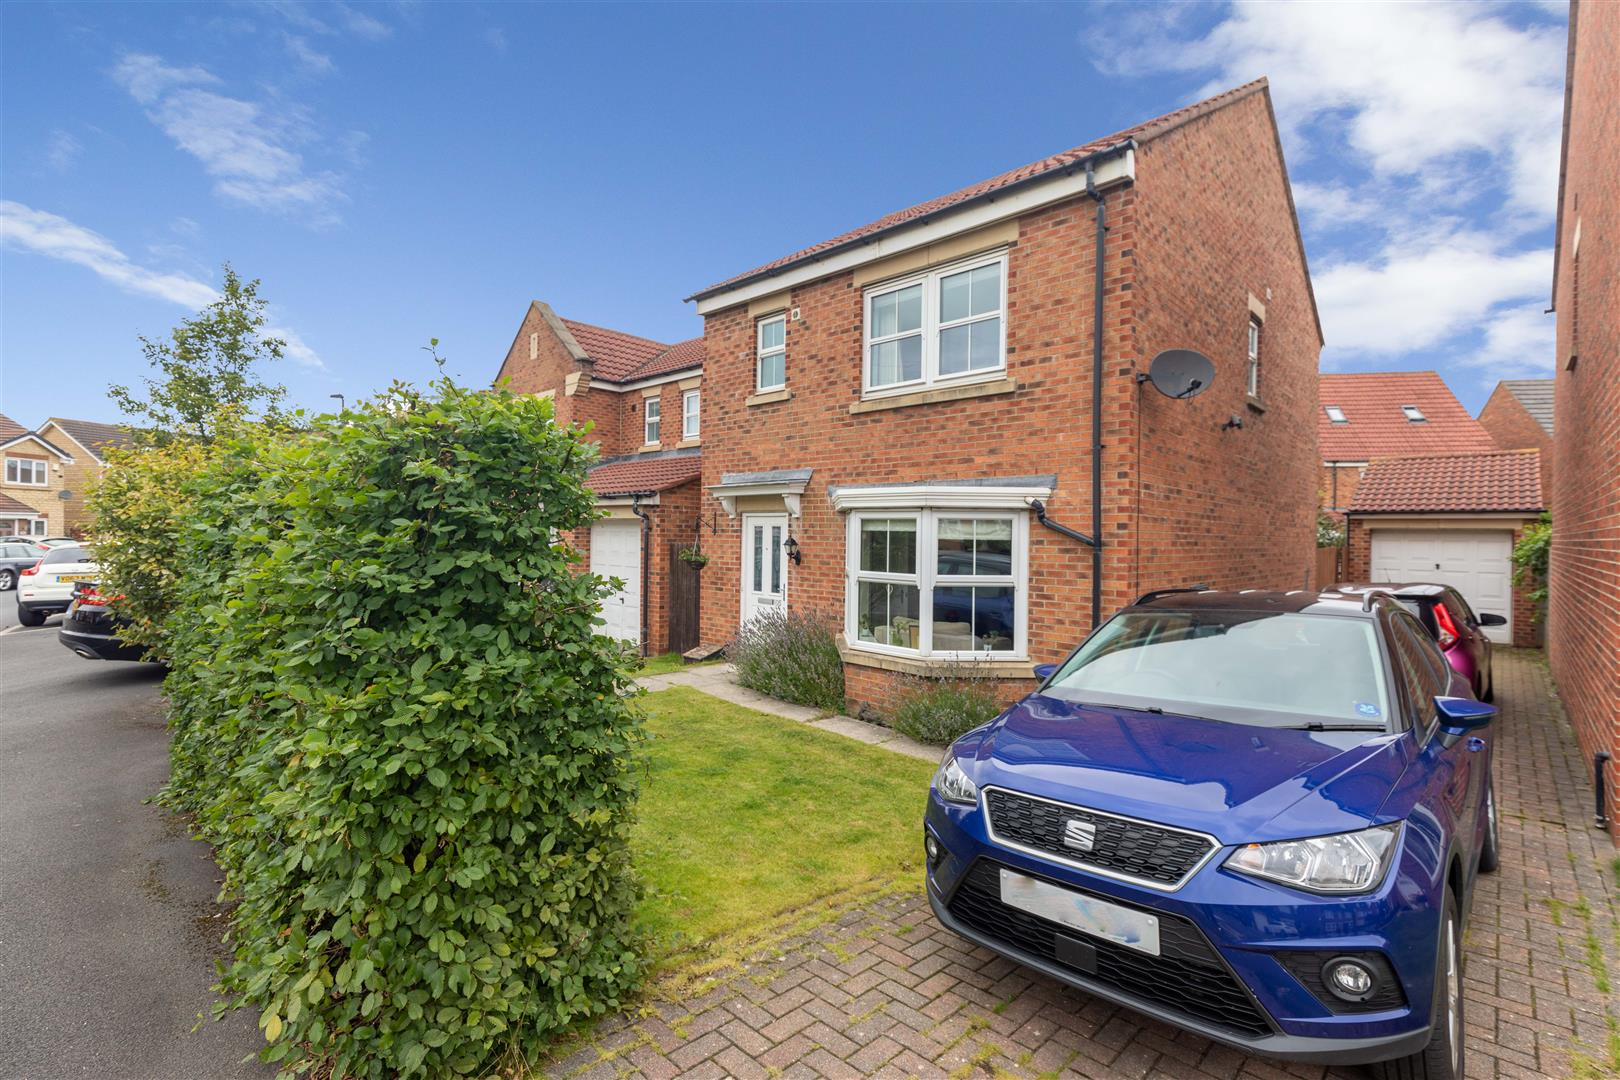 3 bed detached house for sale in Meadow Vale, Northumberland Park - Property Image 1